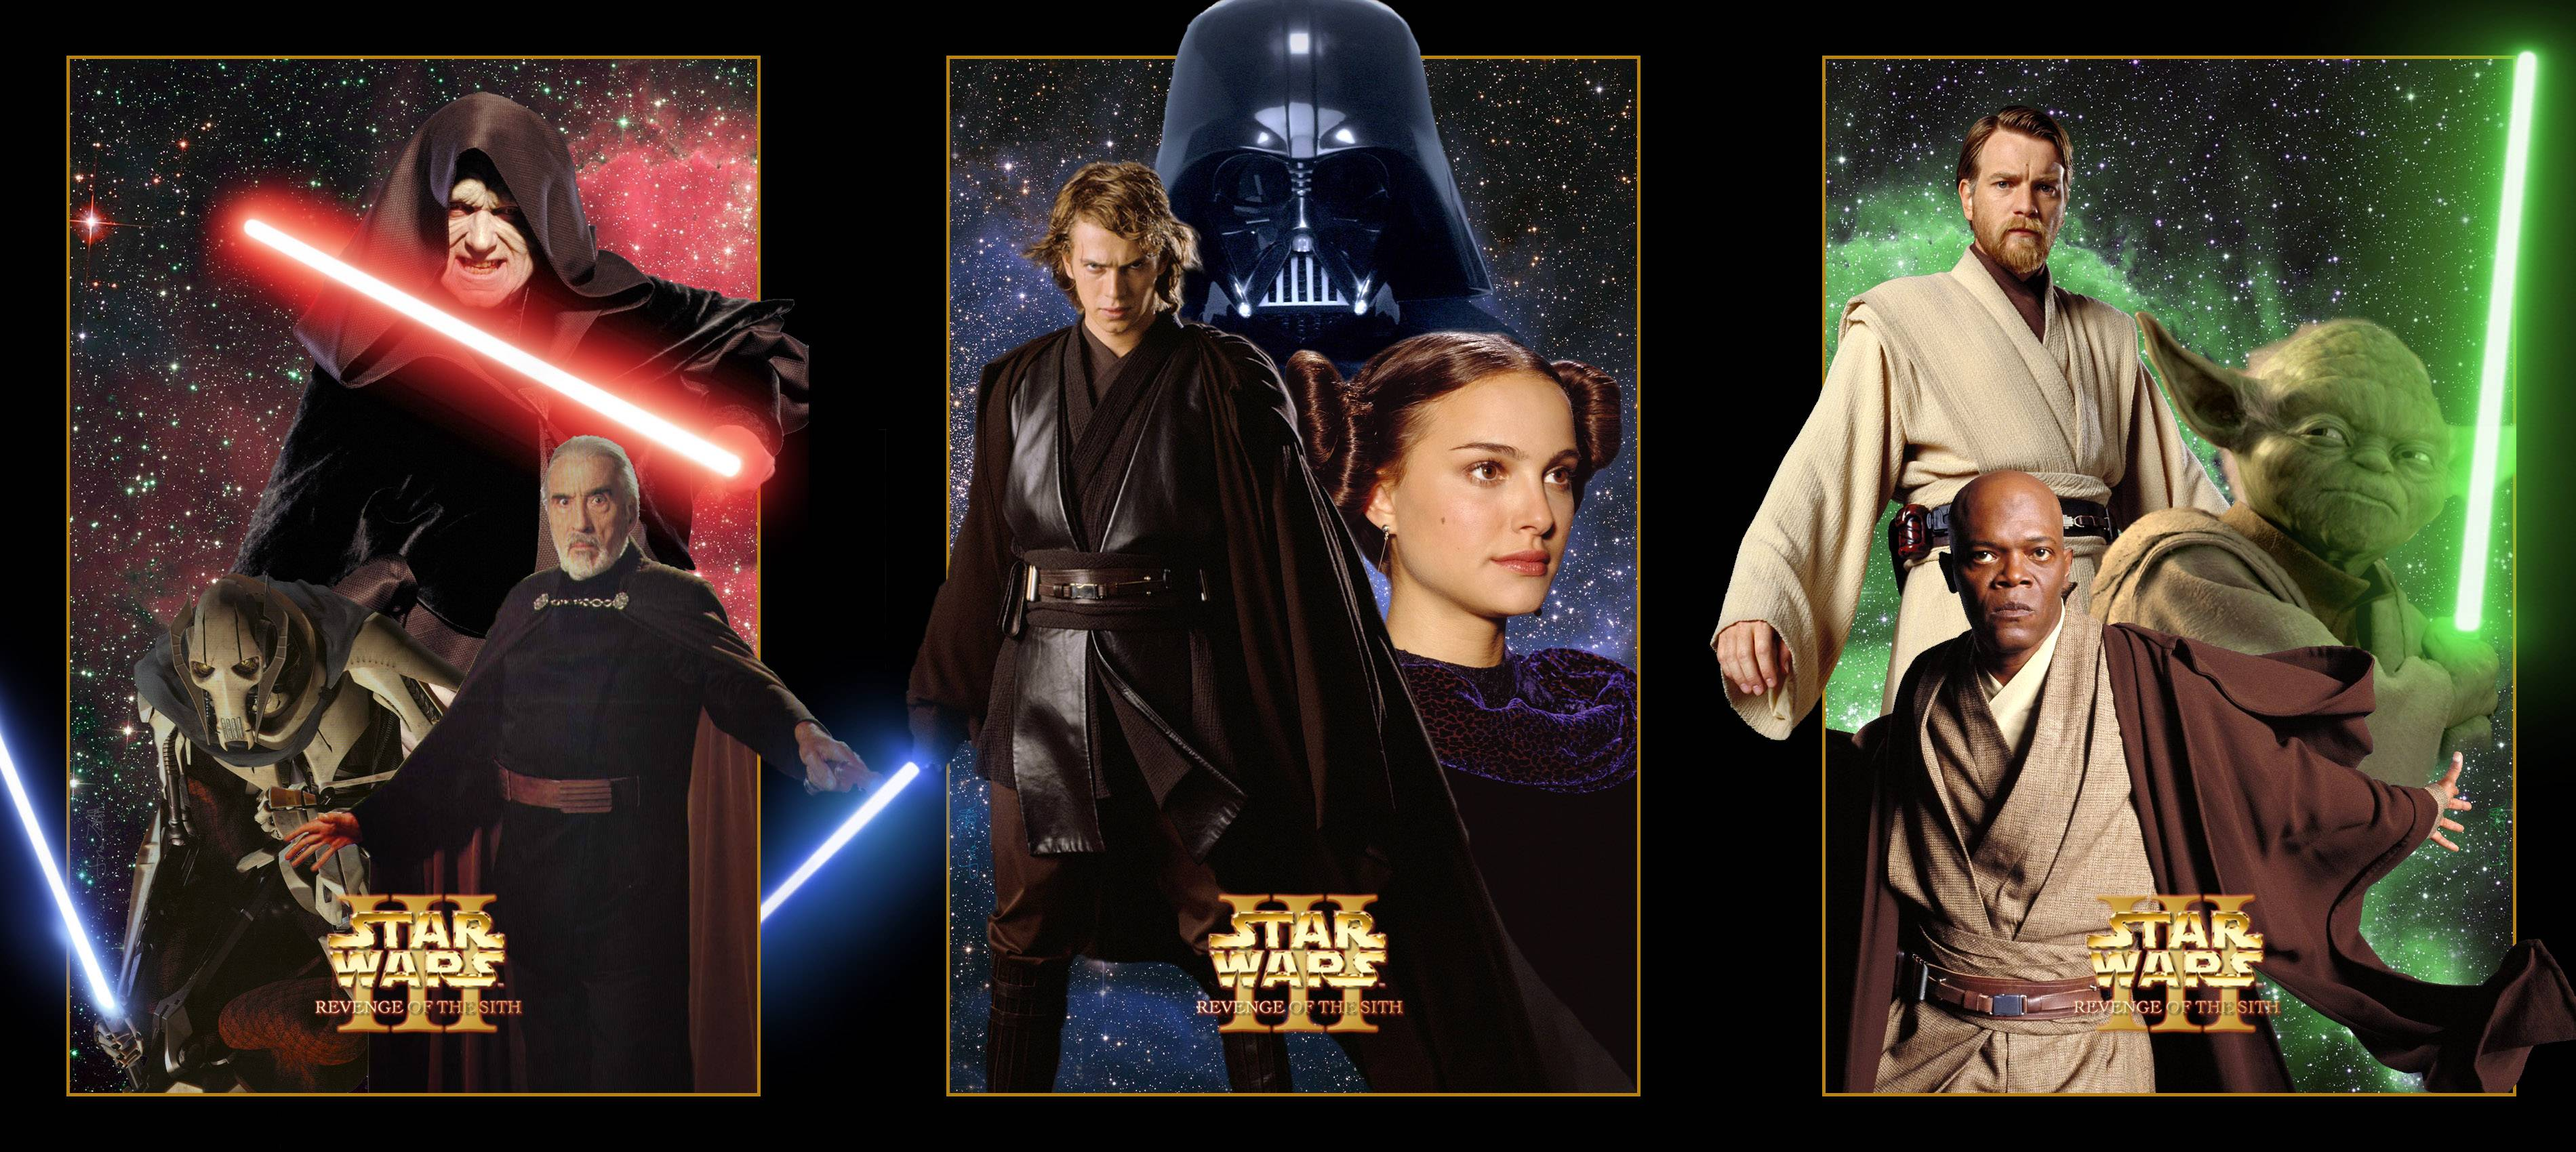 RotS Wallpapers and Screensavers!!!